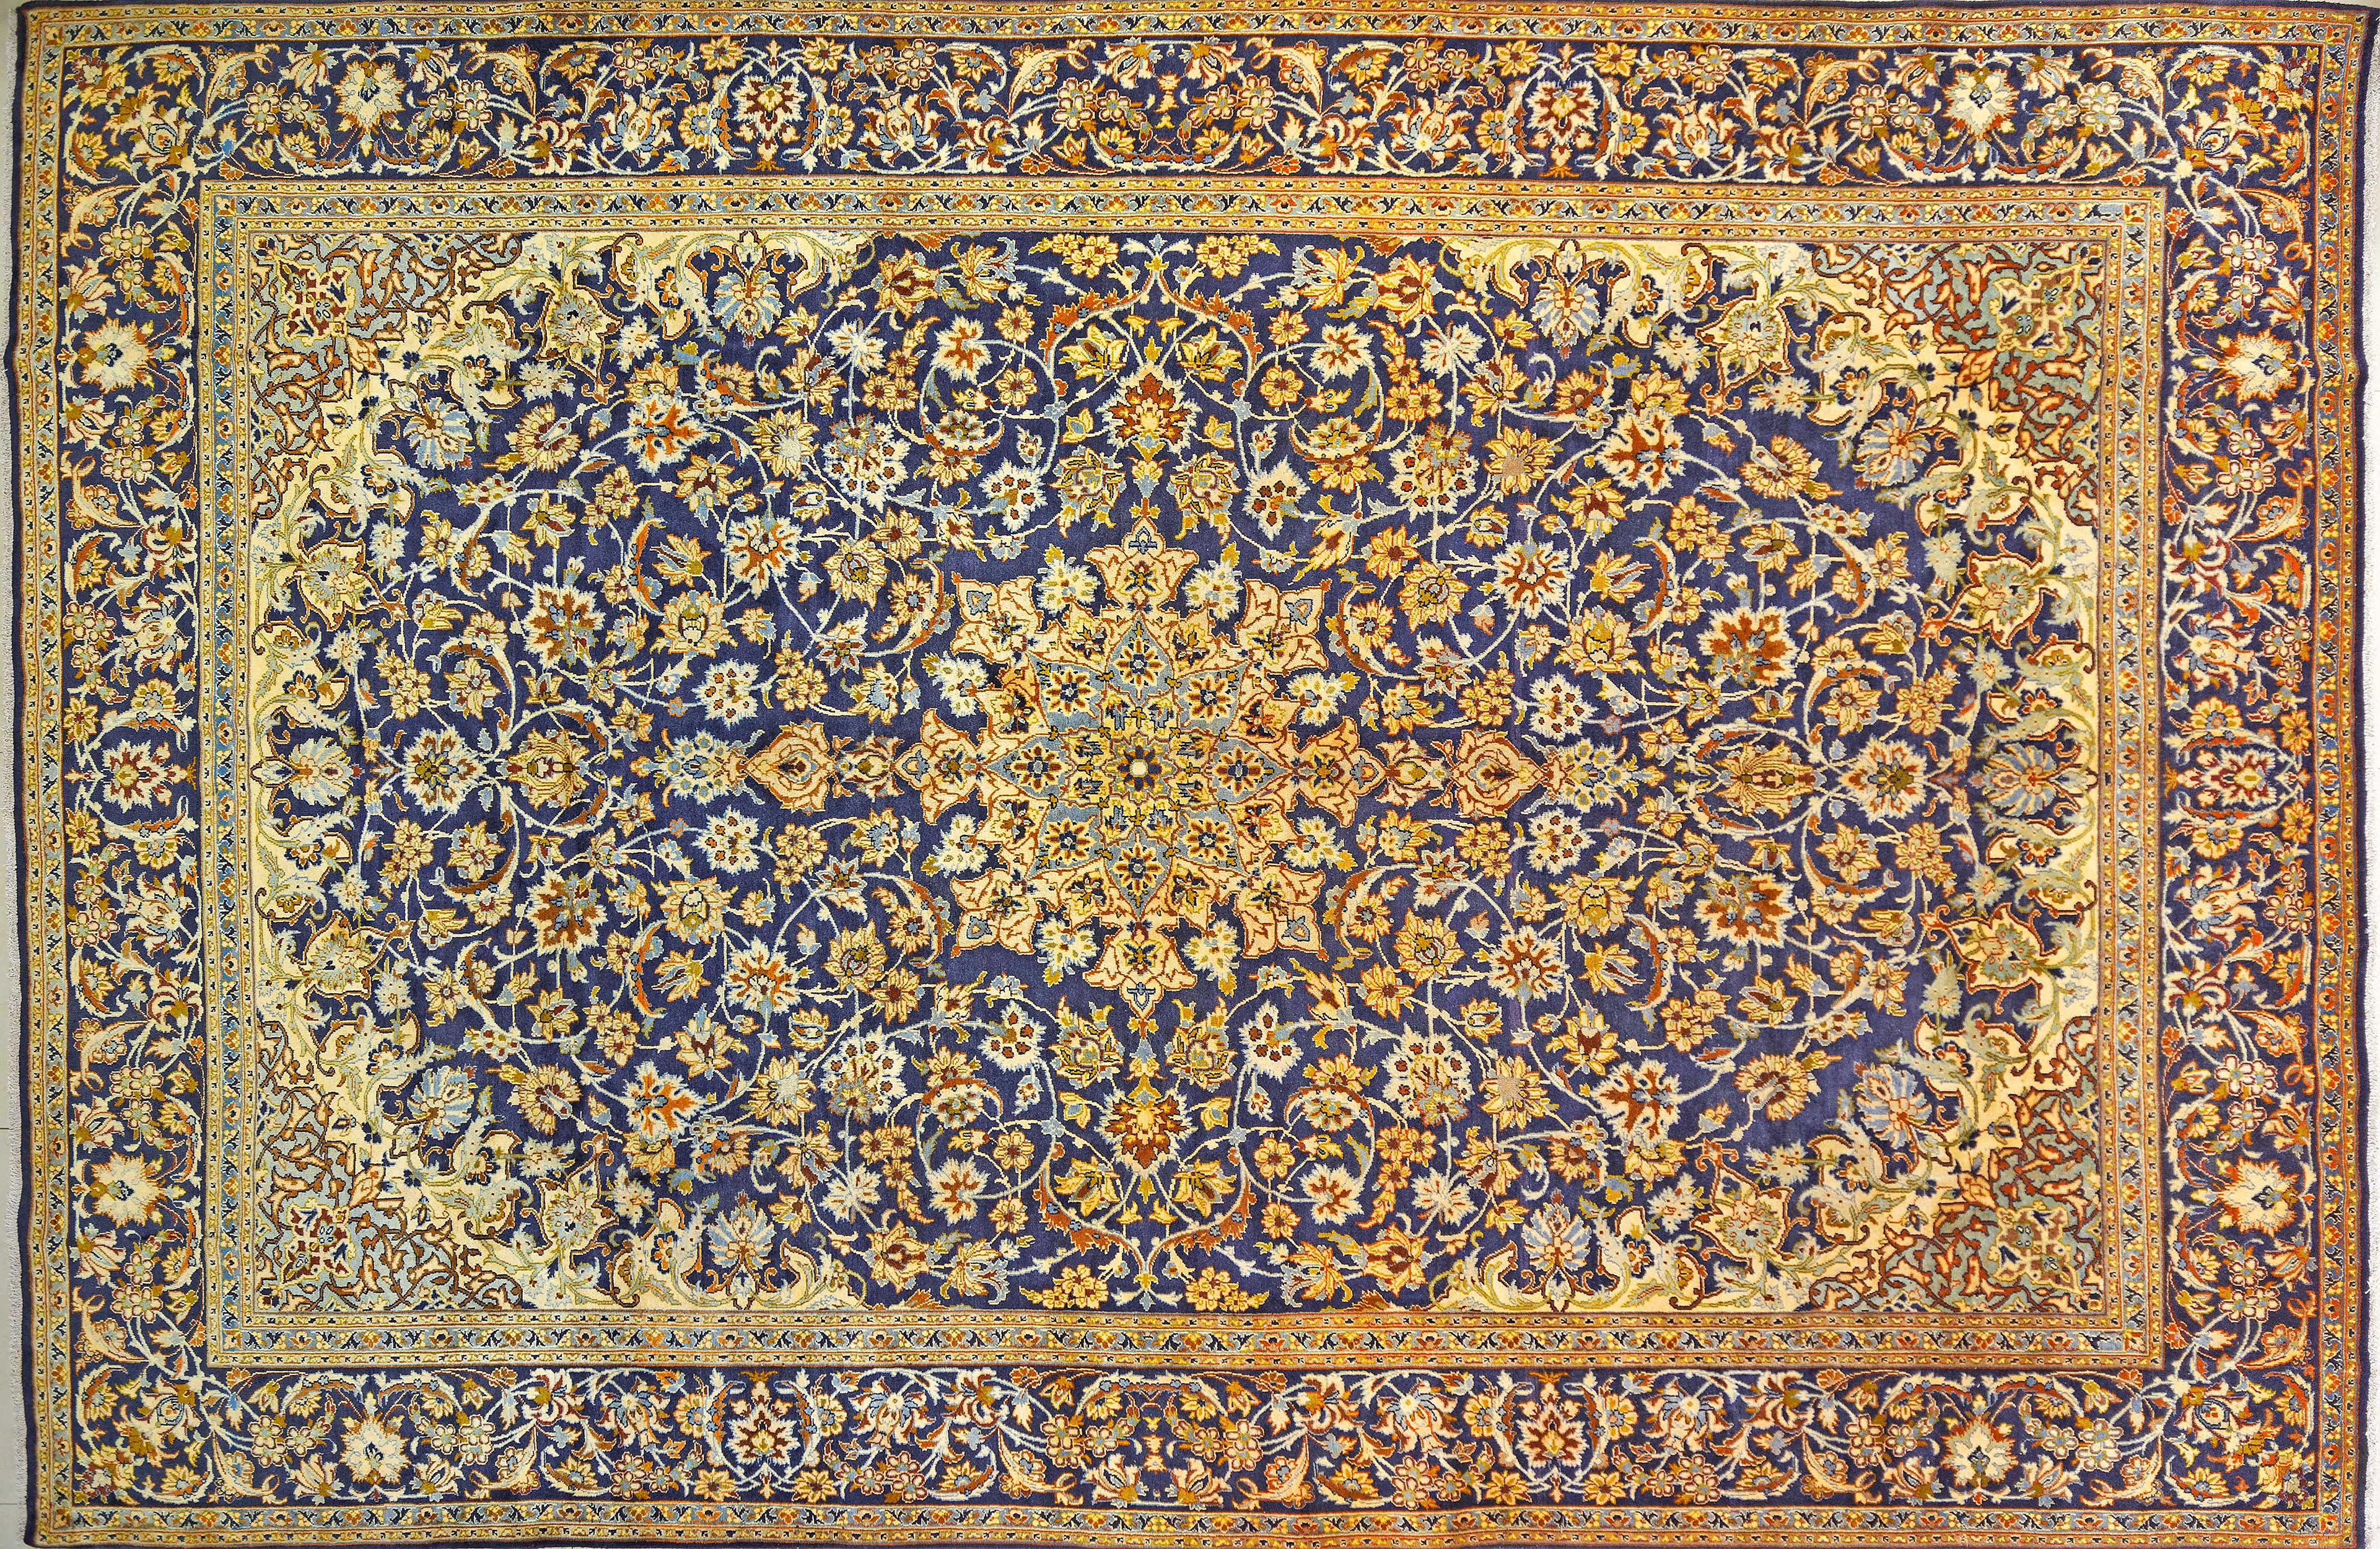 A Persian Hand Knotted Kashan Carpet, 492 x 331